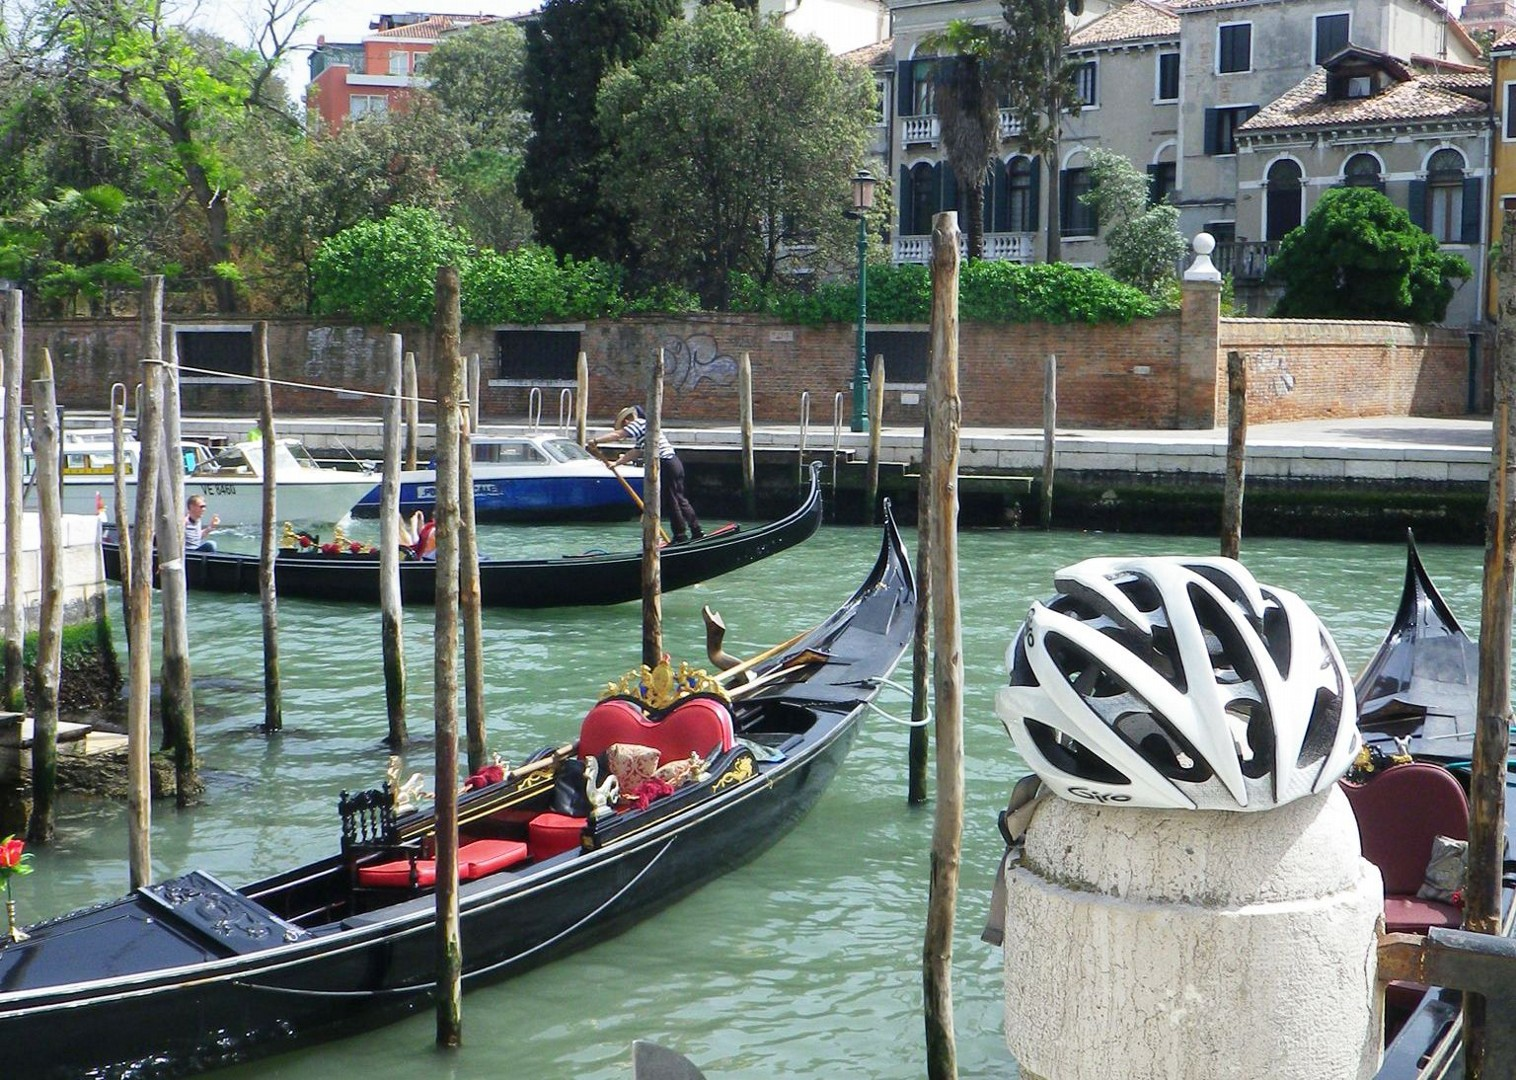 Lake-Garda-Venice-Italy-Family-Cycling-Holiday-Lake-Garda-Venice-Italy.jpg - Italy - Lake Garda to Venice - Self-Guided Family Cycling Holiday - Italia Leisure and Family Cycling